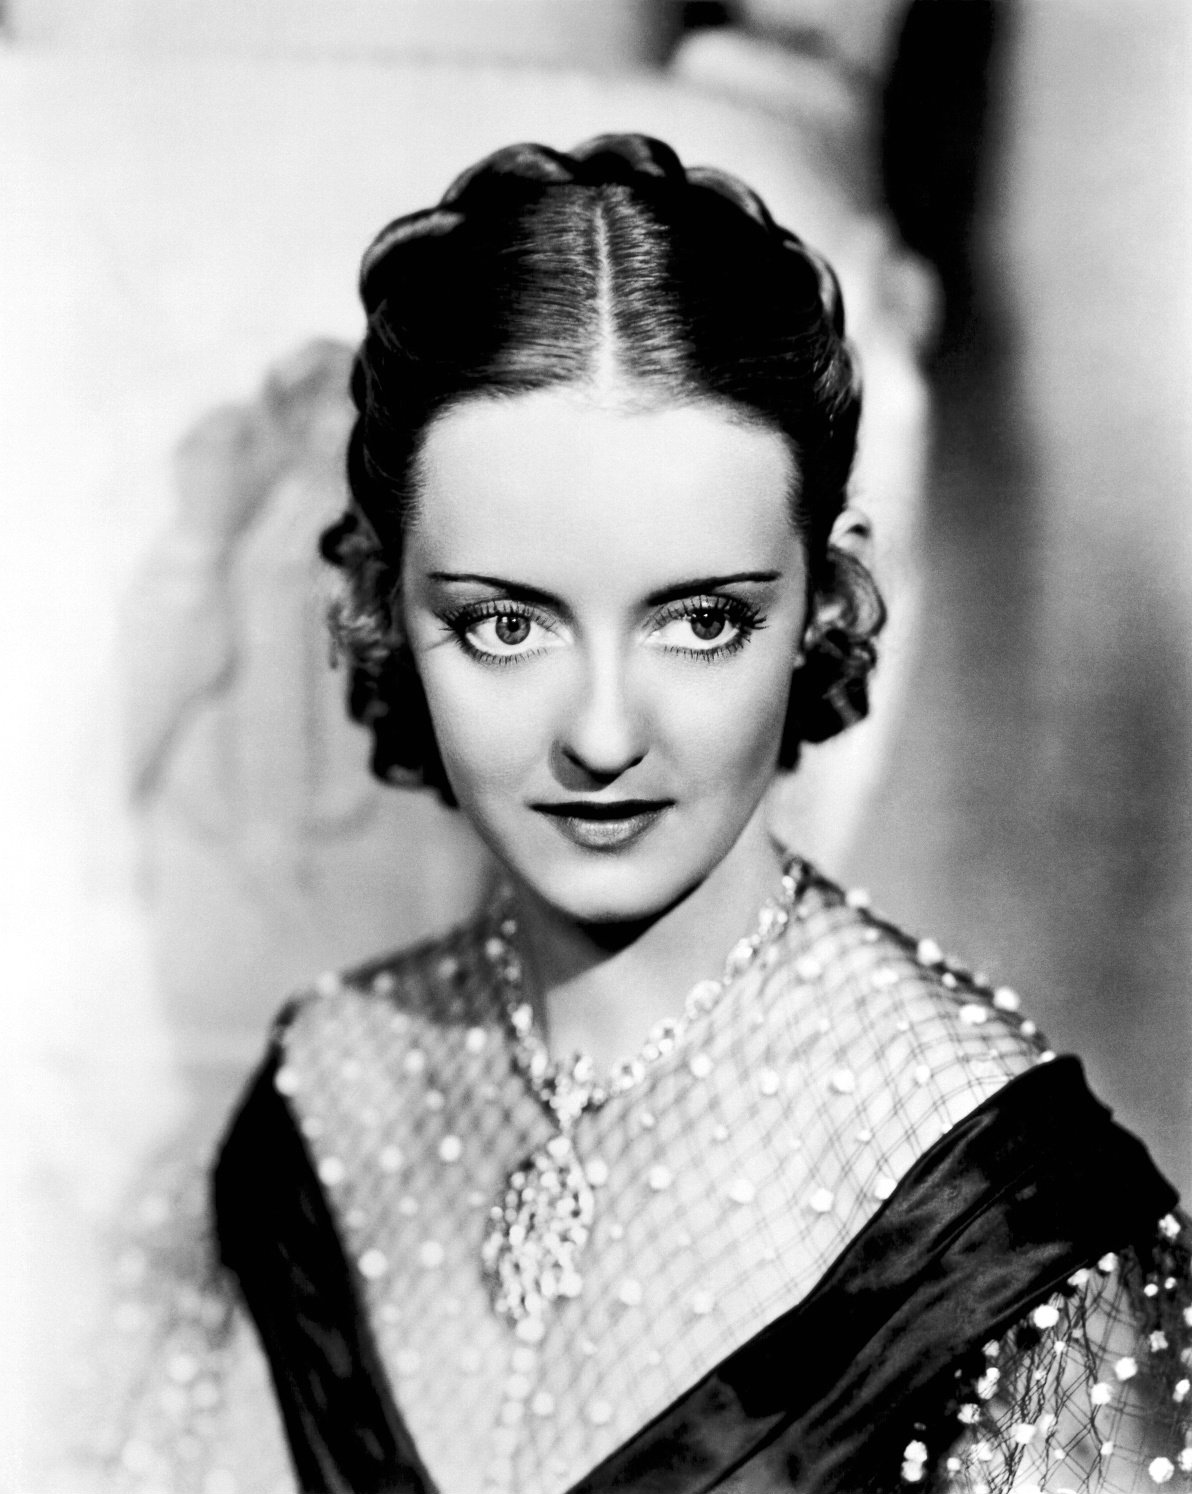 los ojos de bette davis res publica. Black Bedroom Furniture Sets. Home Design Ideas